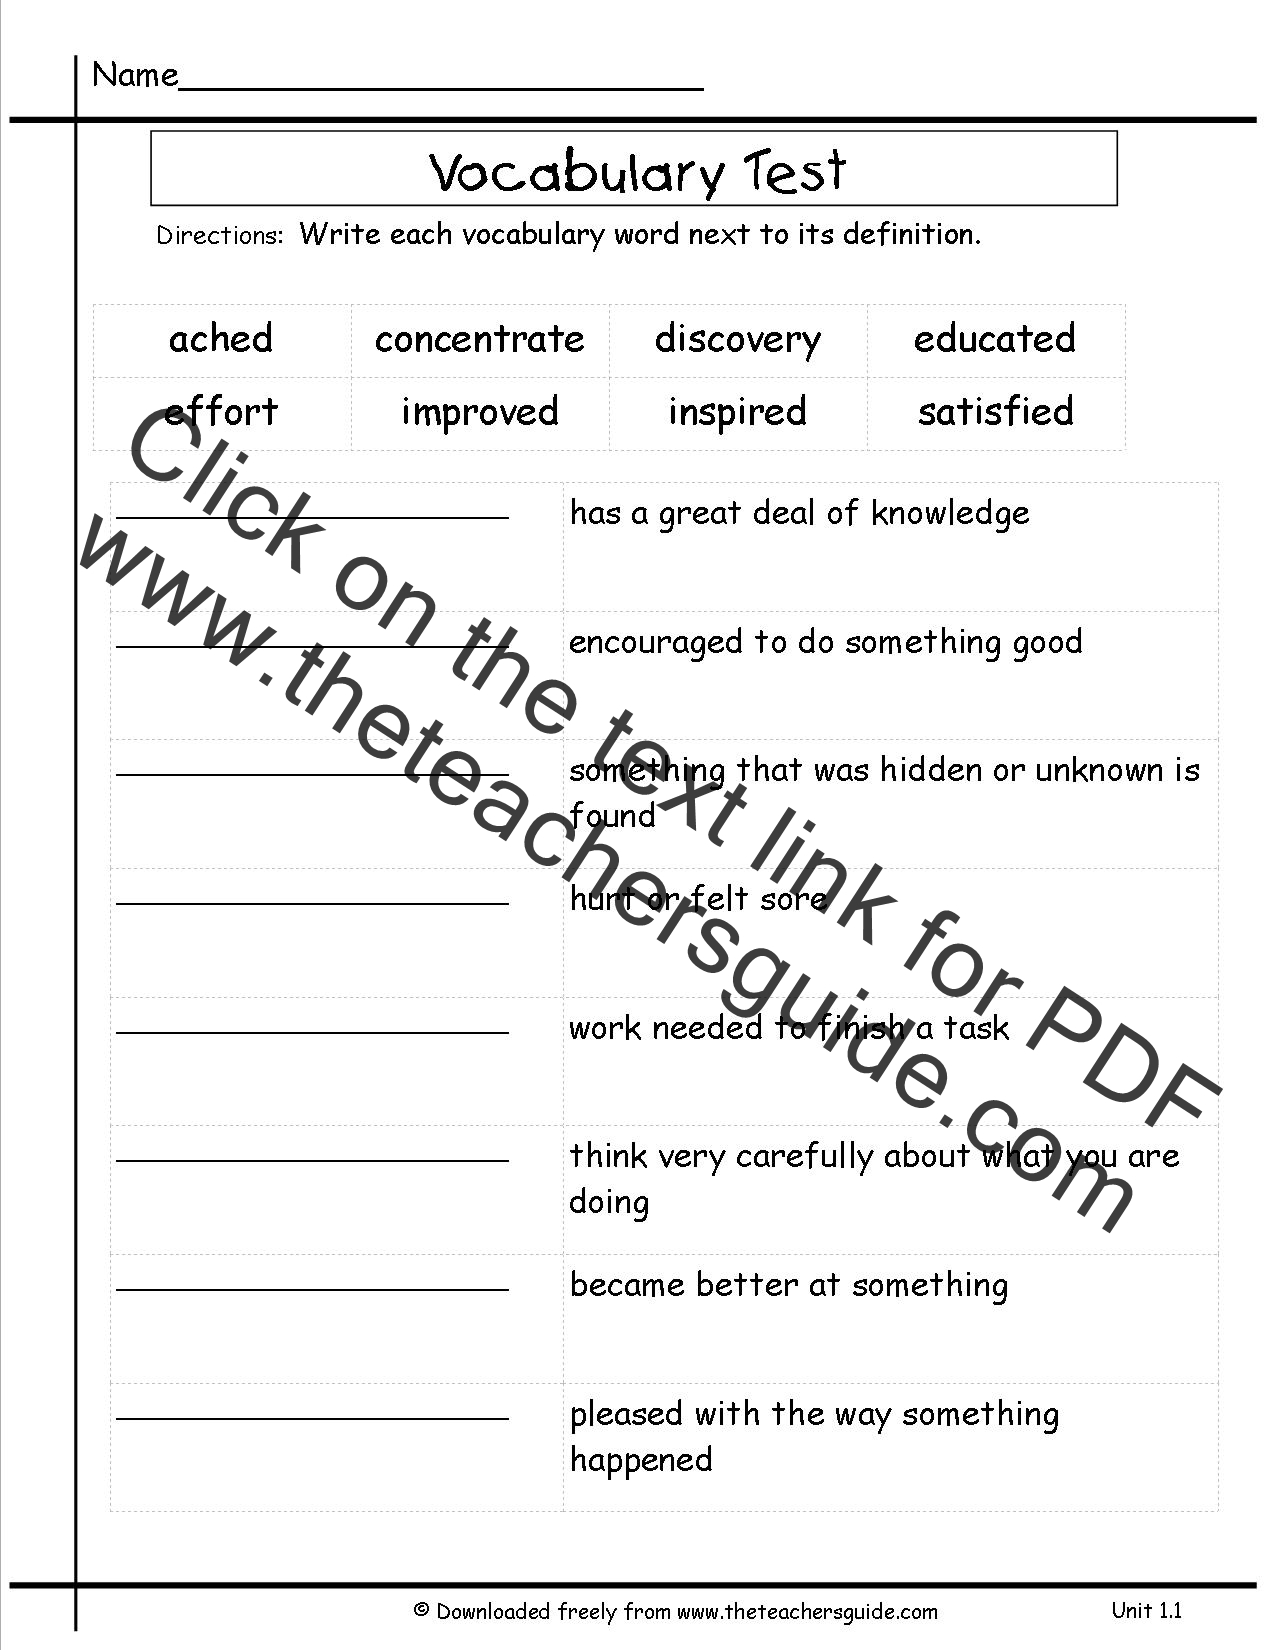 Vocabulary Worksheet Unit 7